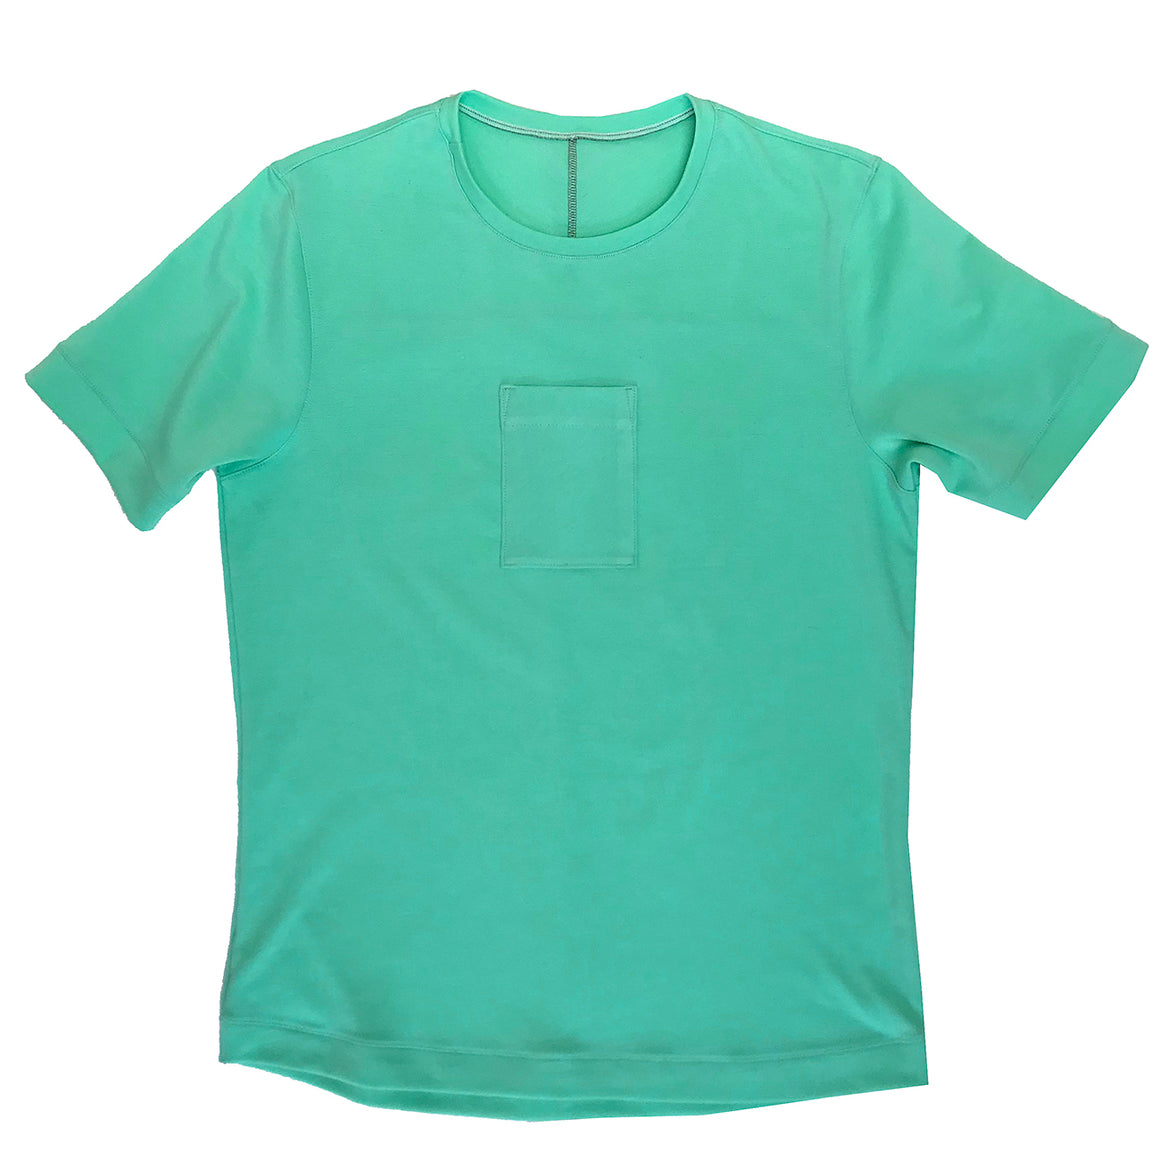 Center Pocket Shirt